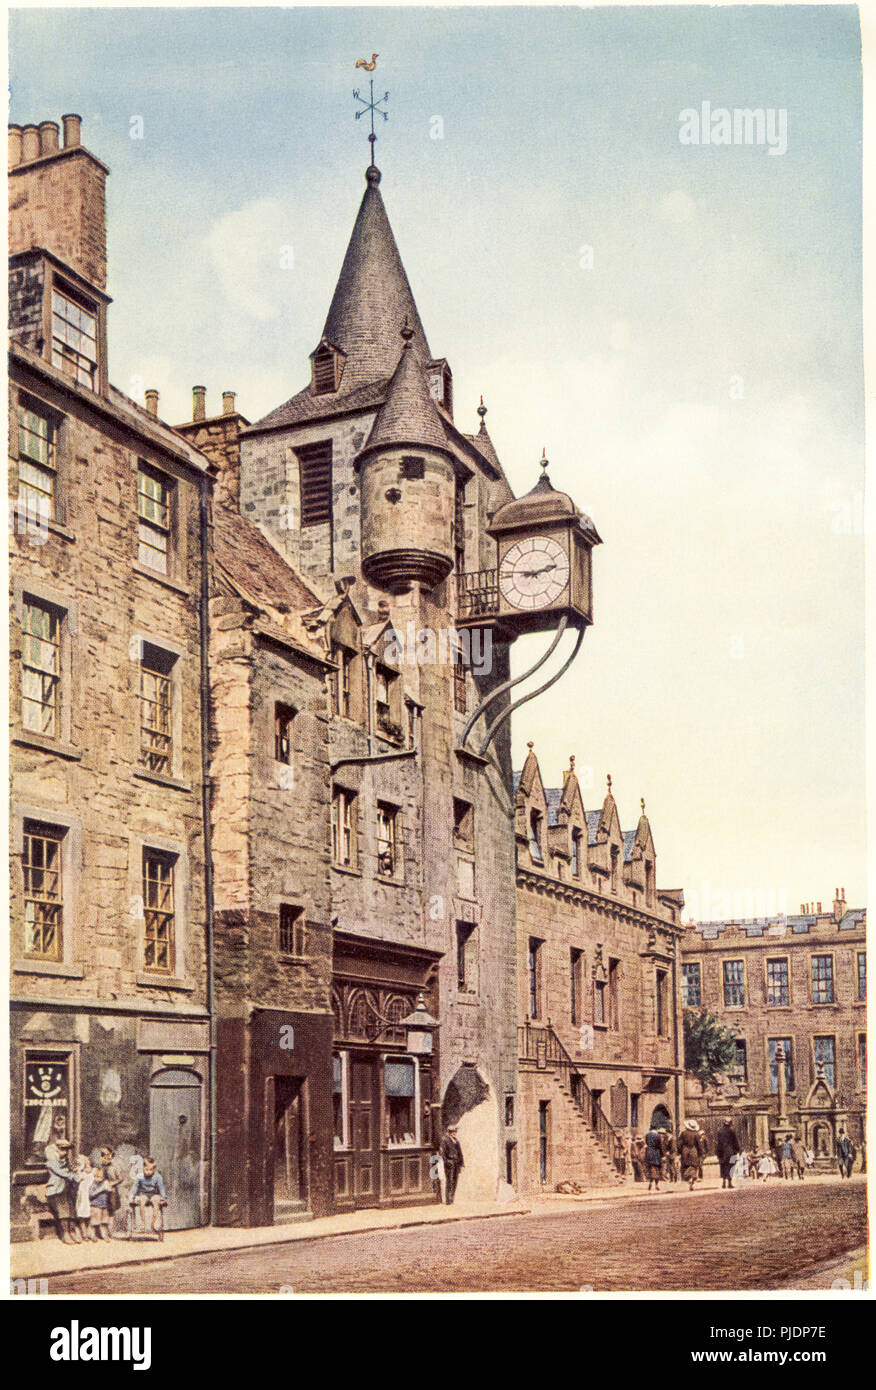 A coloured illustration of The Tolbooth, Canongate, Edinburgh UK scanned at high resolution from a book printed in 1929. Stock Photo